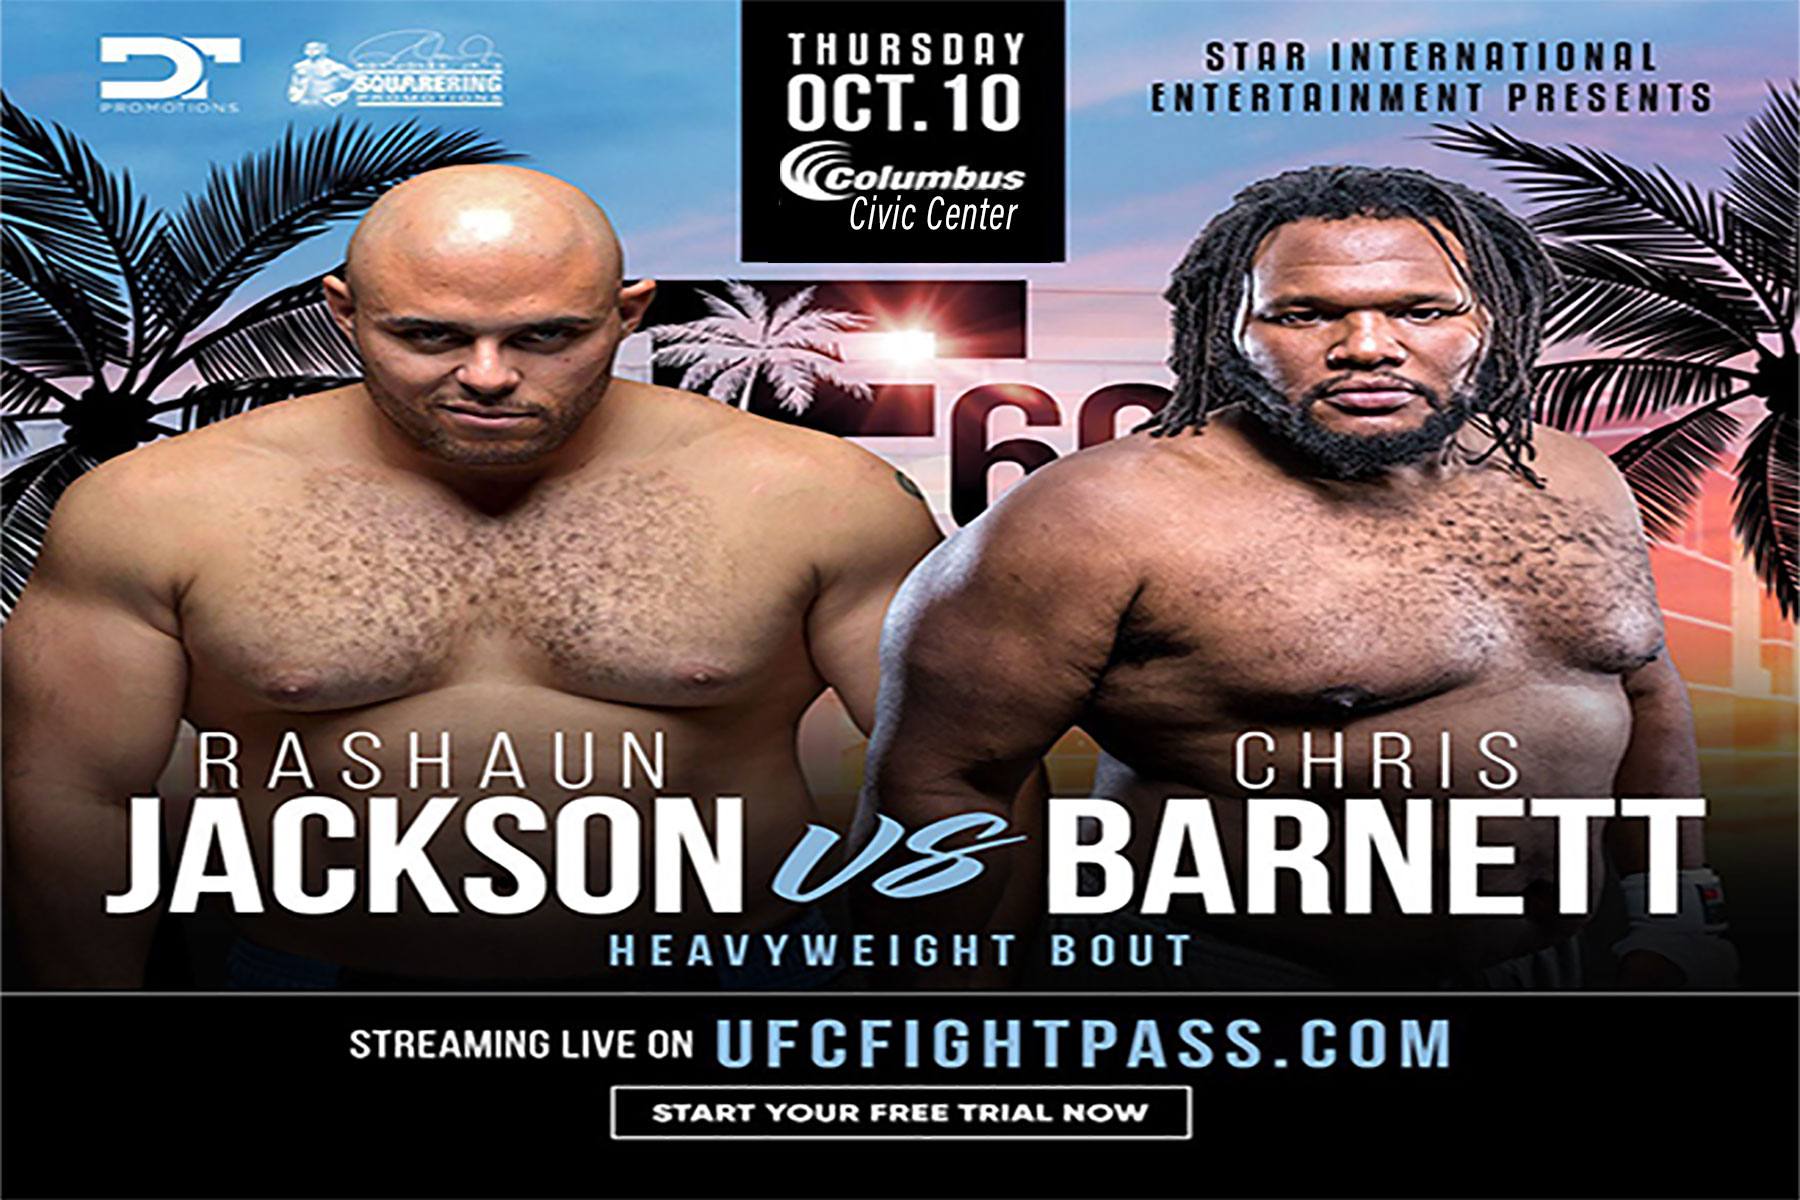 Star International Entertainment Presents Island Fights 60